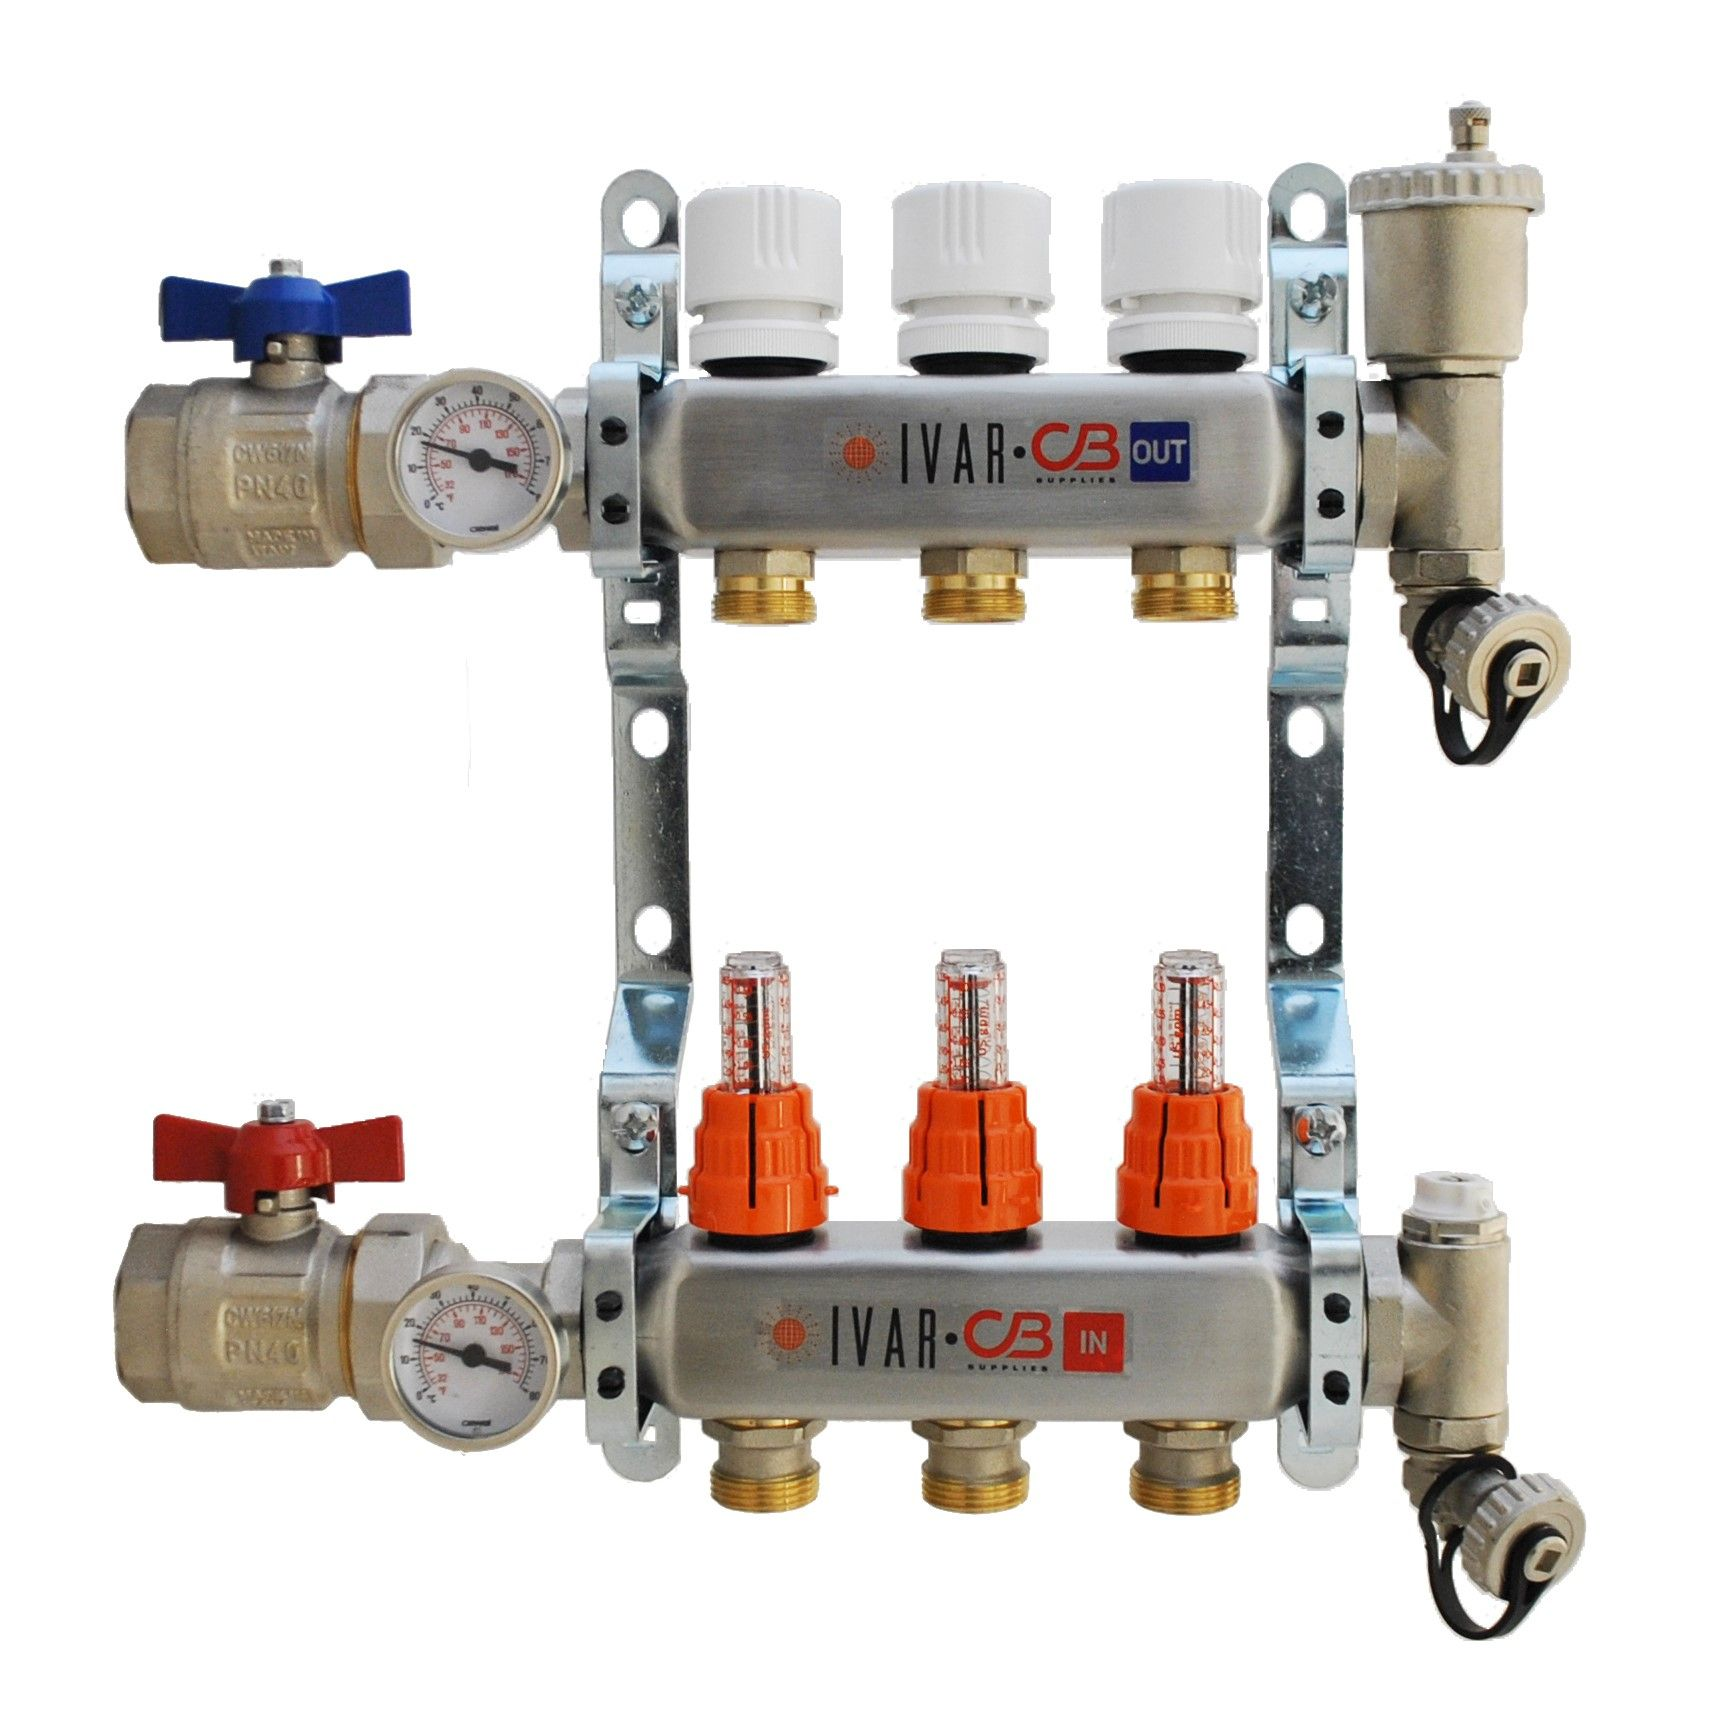 IVAR RADIANT FLOOR HEATING MANIFOLD 1